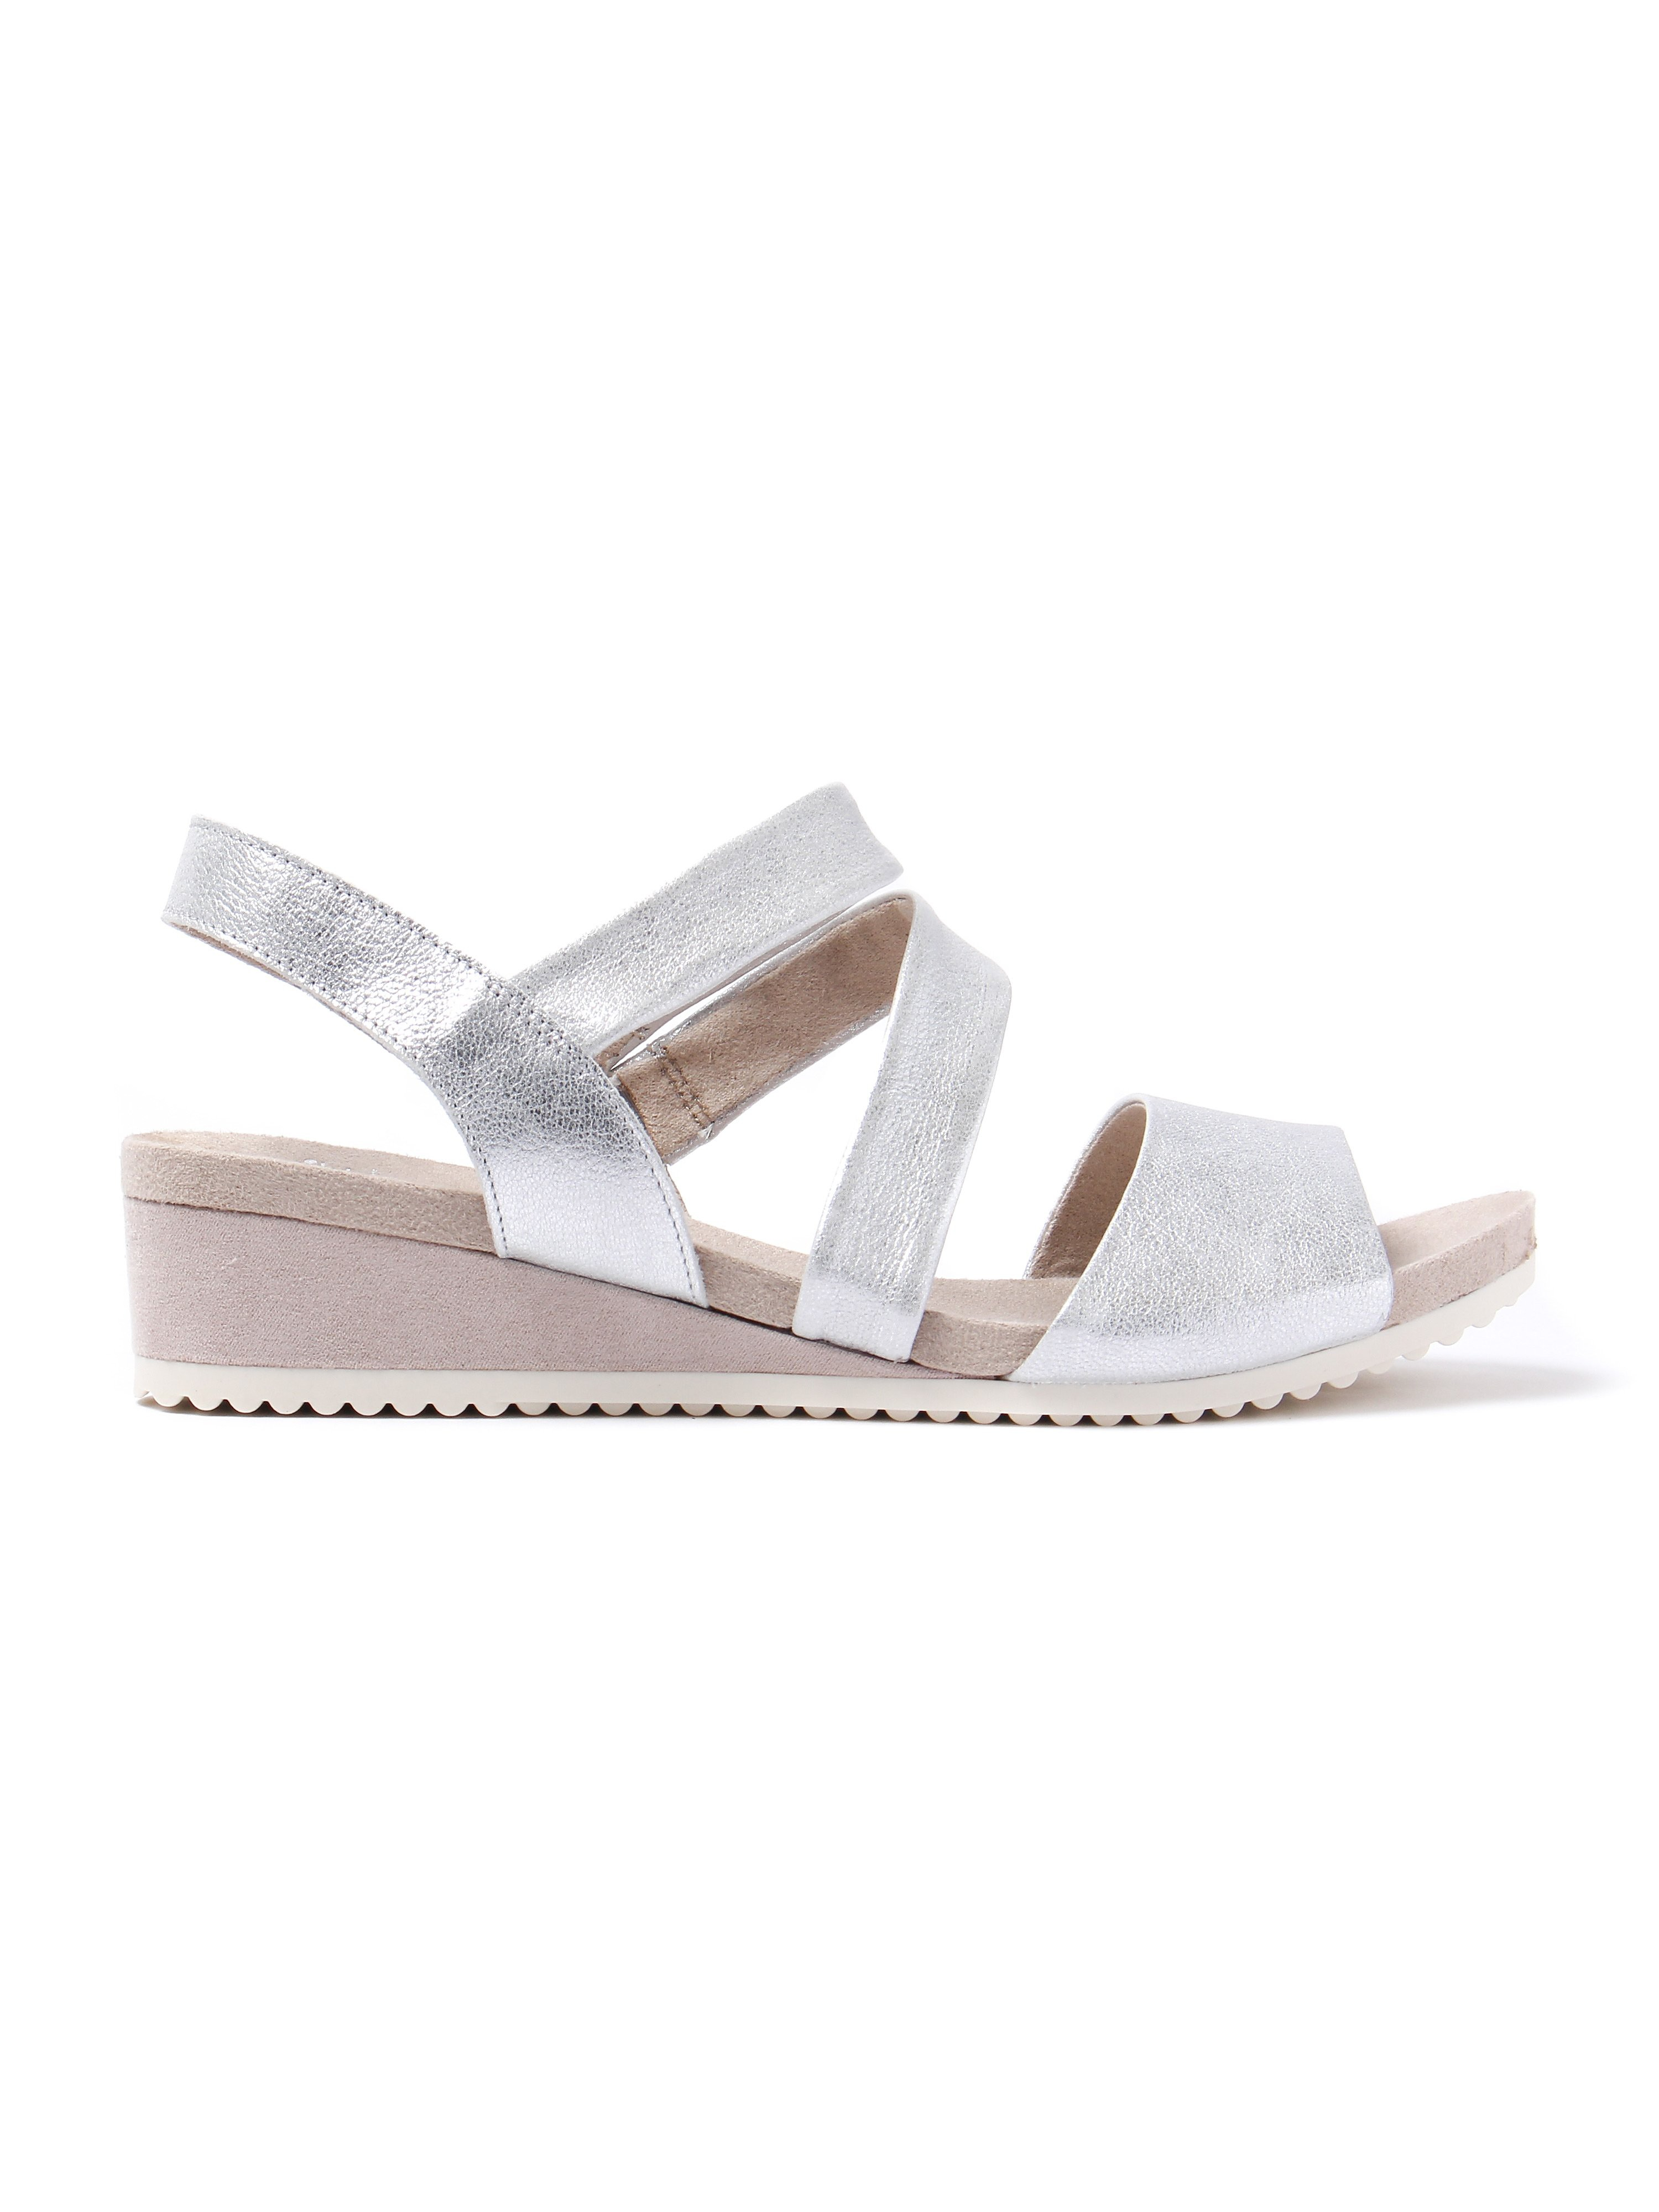 Caprice Women's Cross Strap Leather Wedge Sandals - Silver